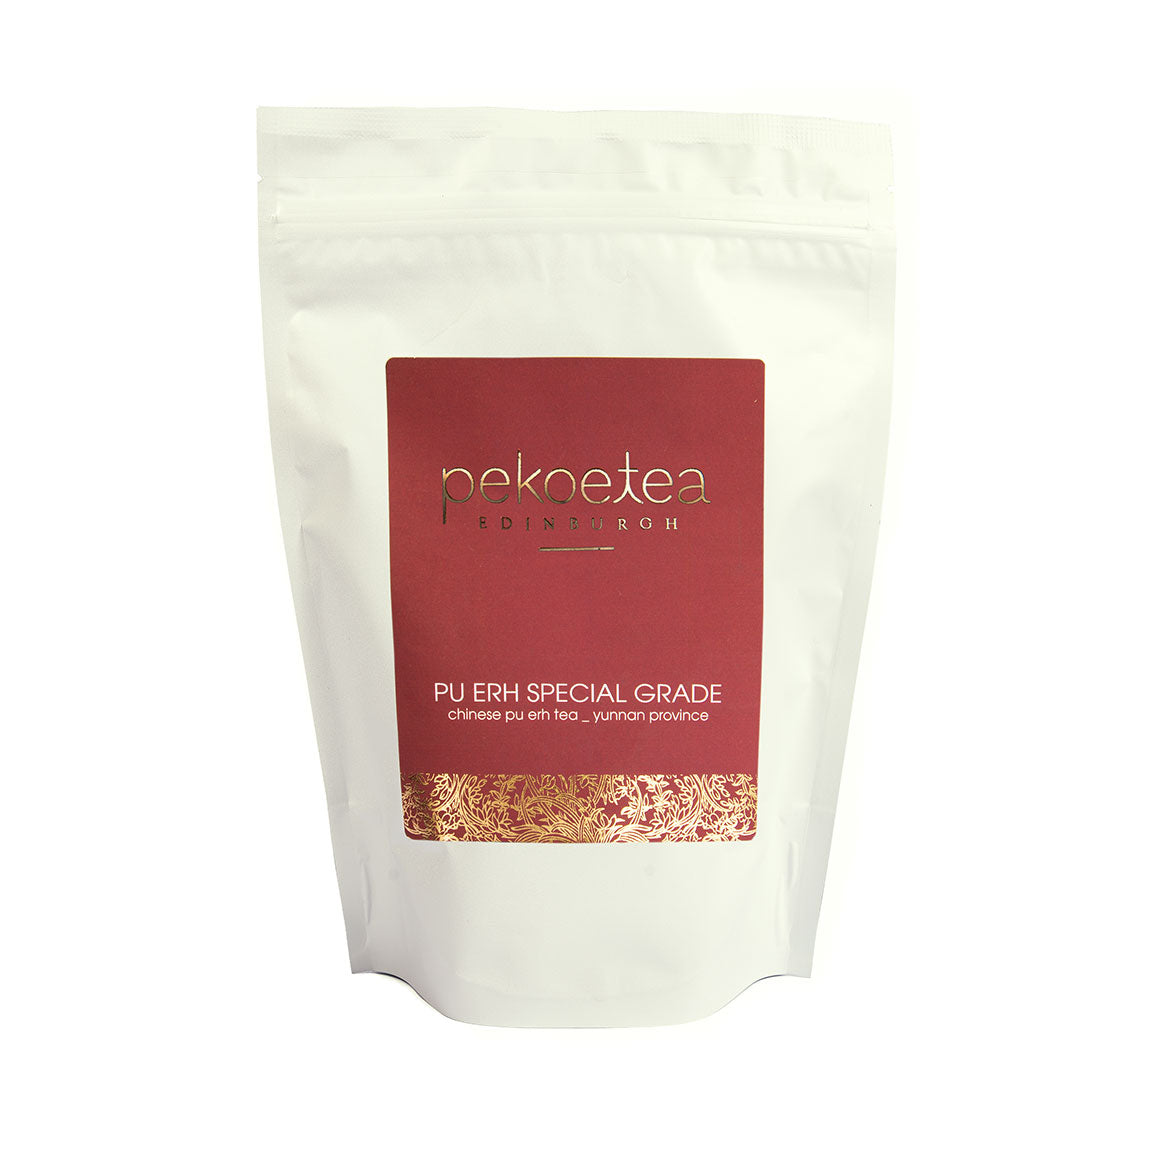 PekoeTea Edinburgh Cooked Pu Erh Tea Special Grade 250g Re-sealable Pouch